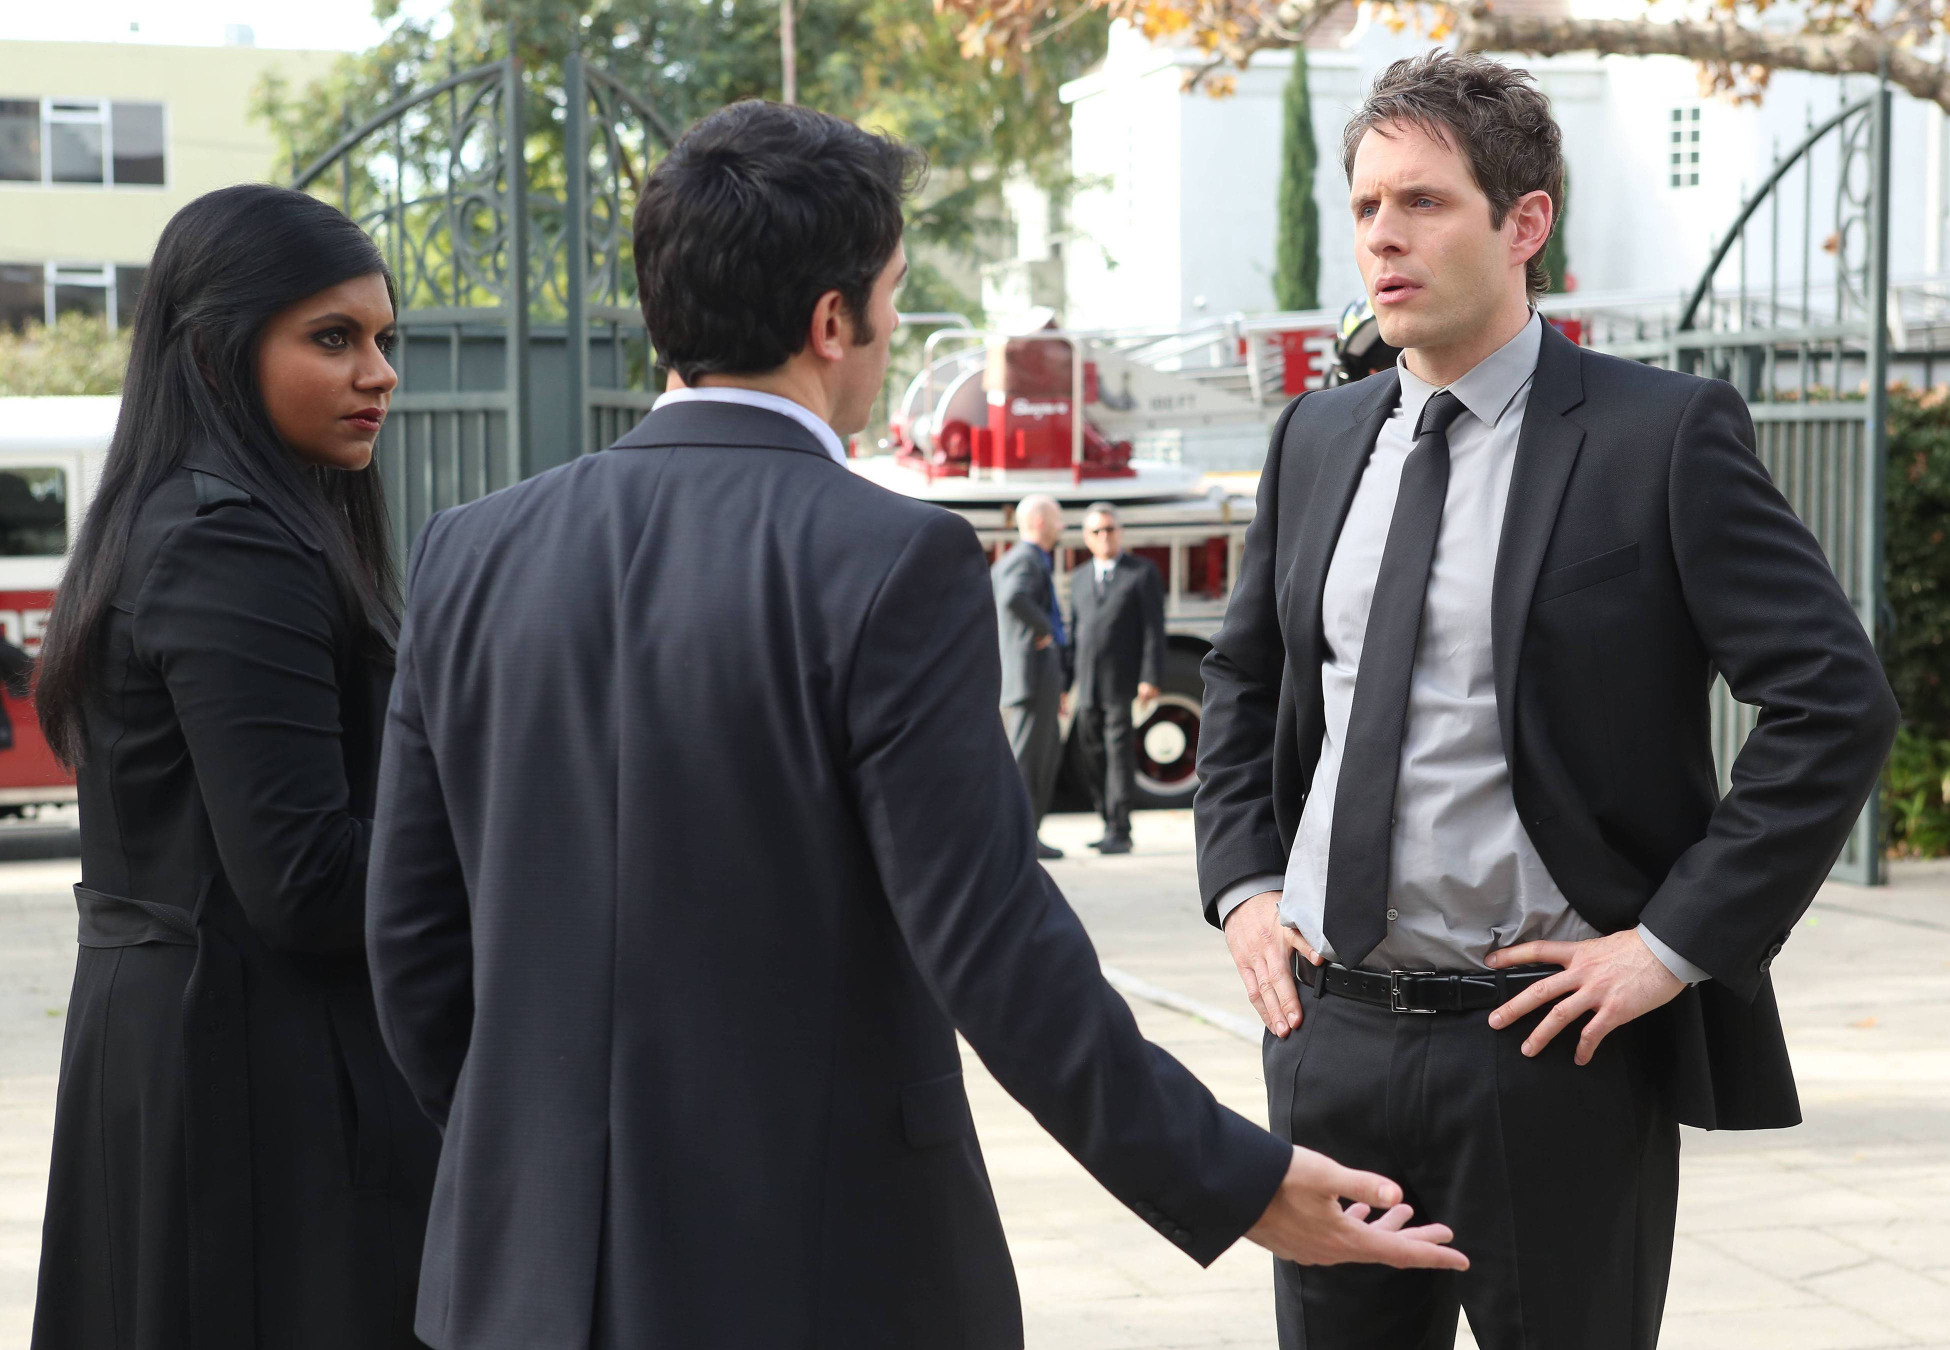 I wonder if this is Mindy and Danny breaking the news of their relationship to Cliff. (Can we call it a relationship? I hope so.)